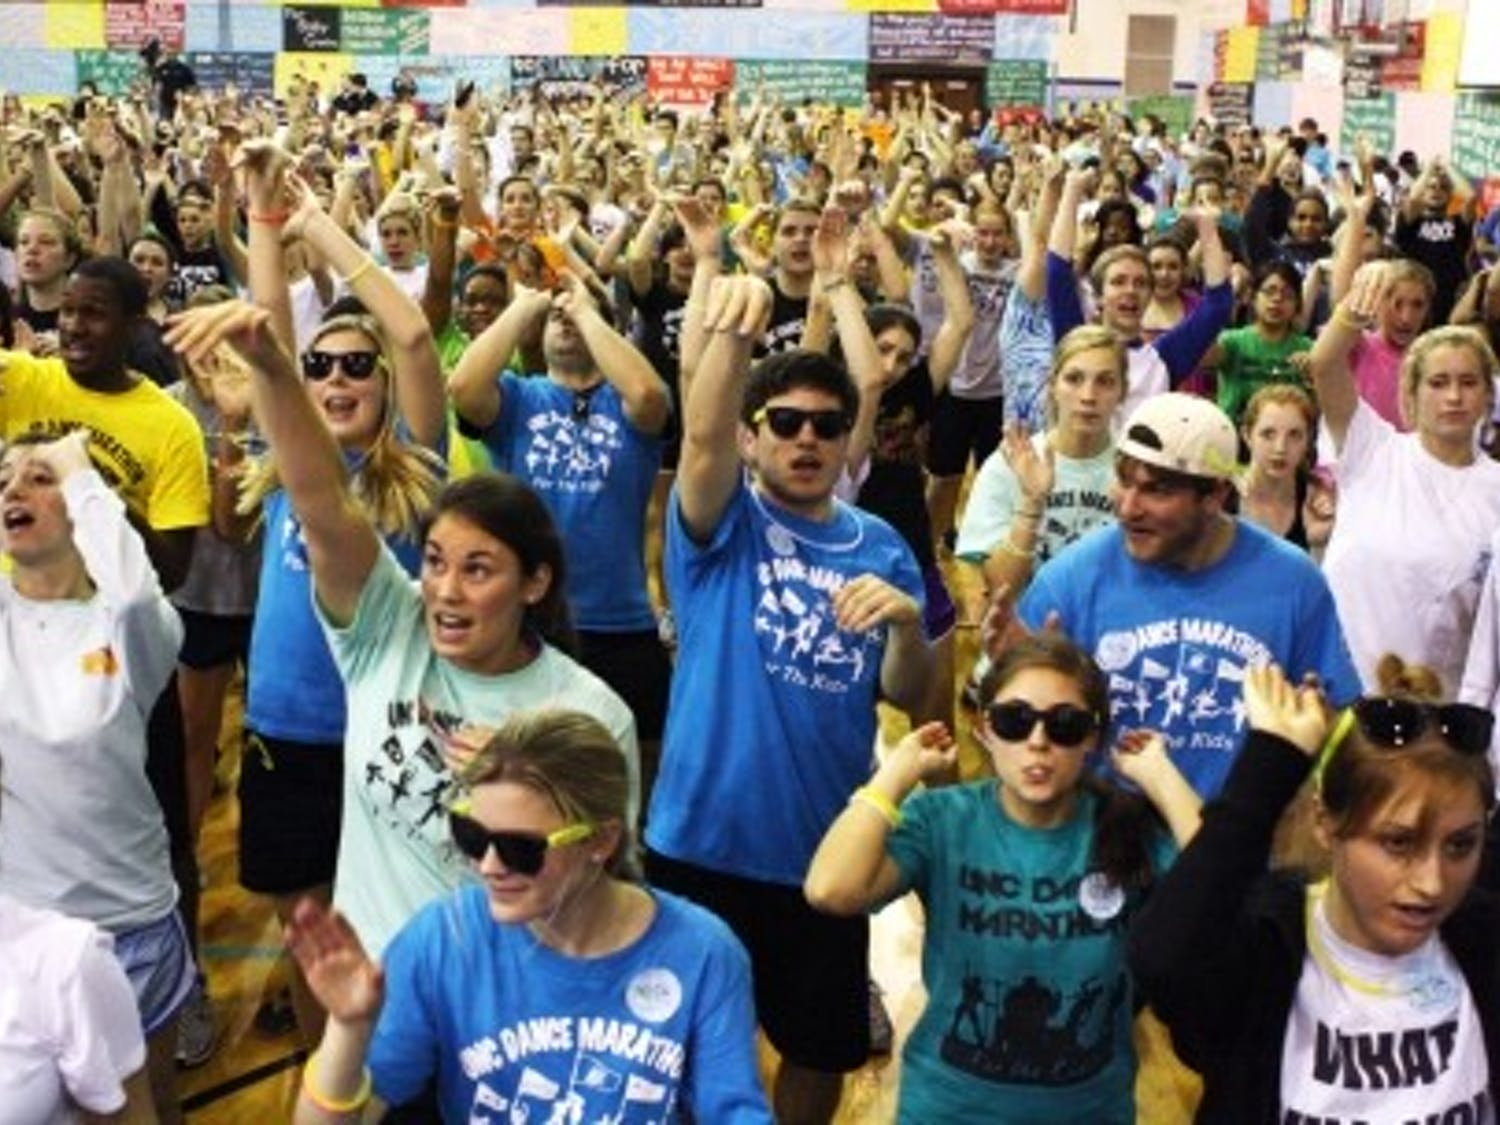 These participants in a 2011 Dance Marathon probably wish they had some tunes as sweet as these.